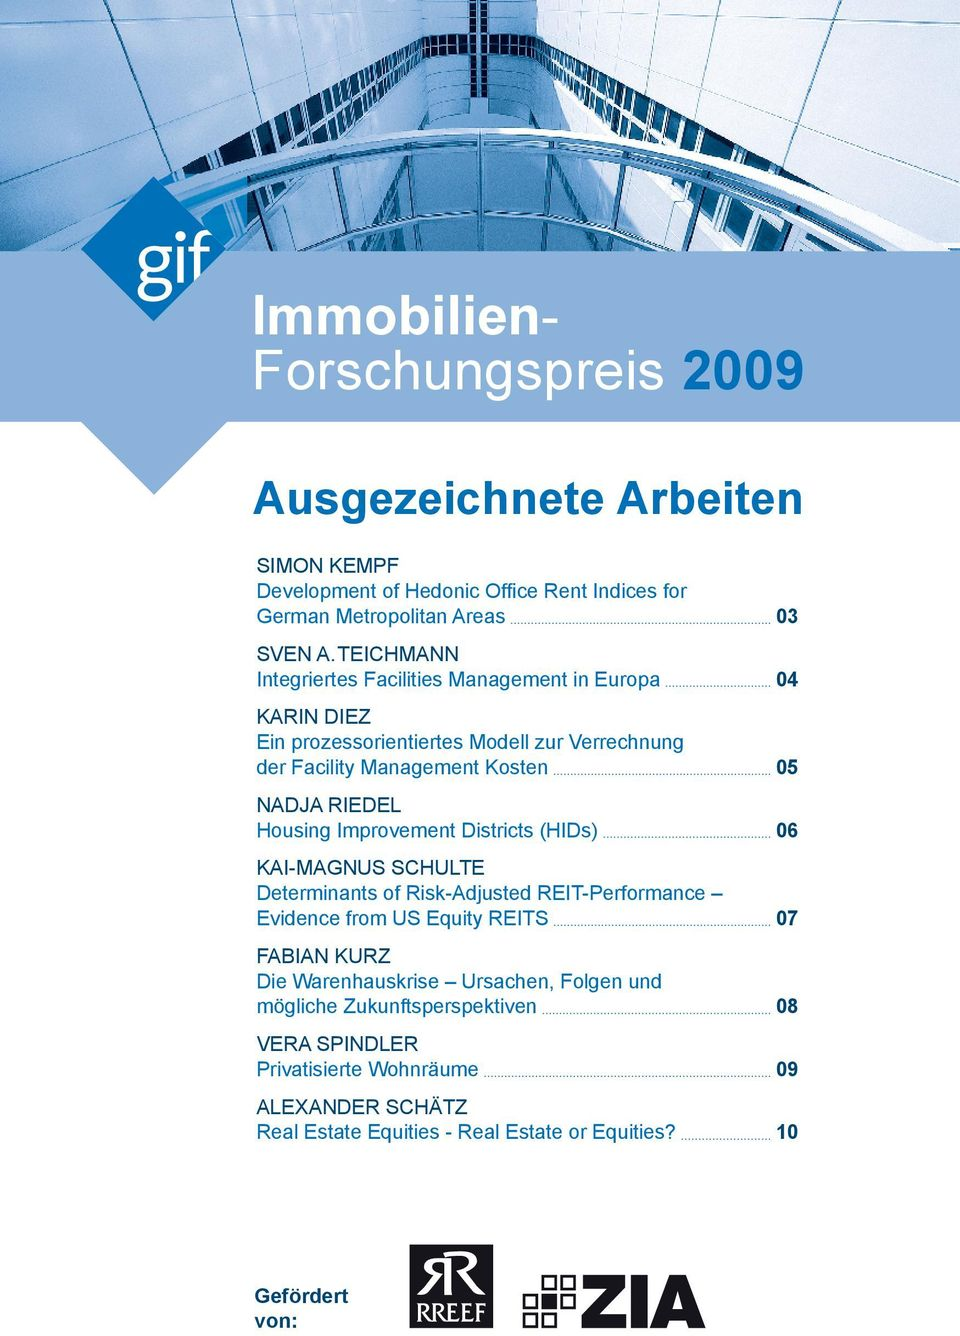 Housing Improvement Districts (HIDs) 06 KAI-MAGNUS SCHULTE Determinants of Risk-Adjusted REIT-Performance Evidence from US Equity REITS 07 FABIAN KURZ Die